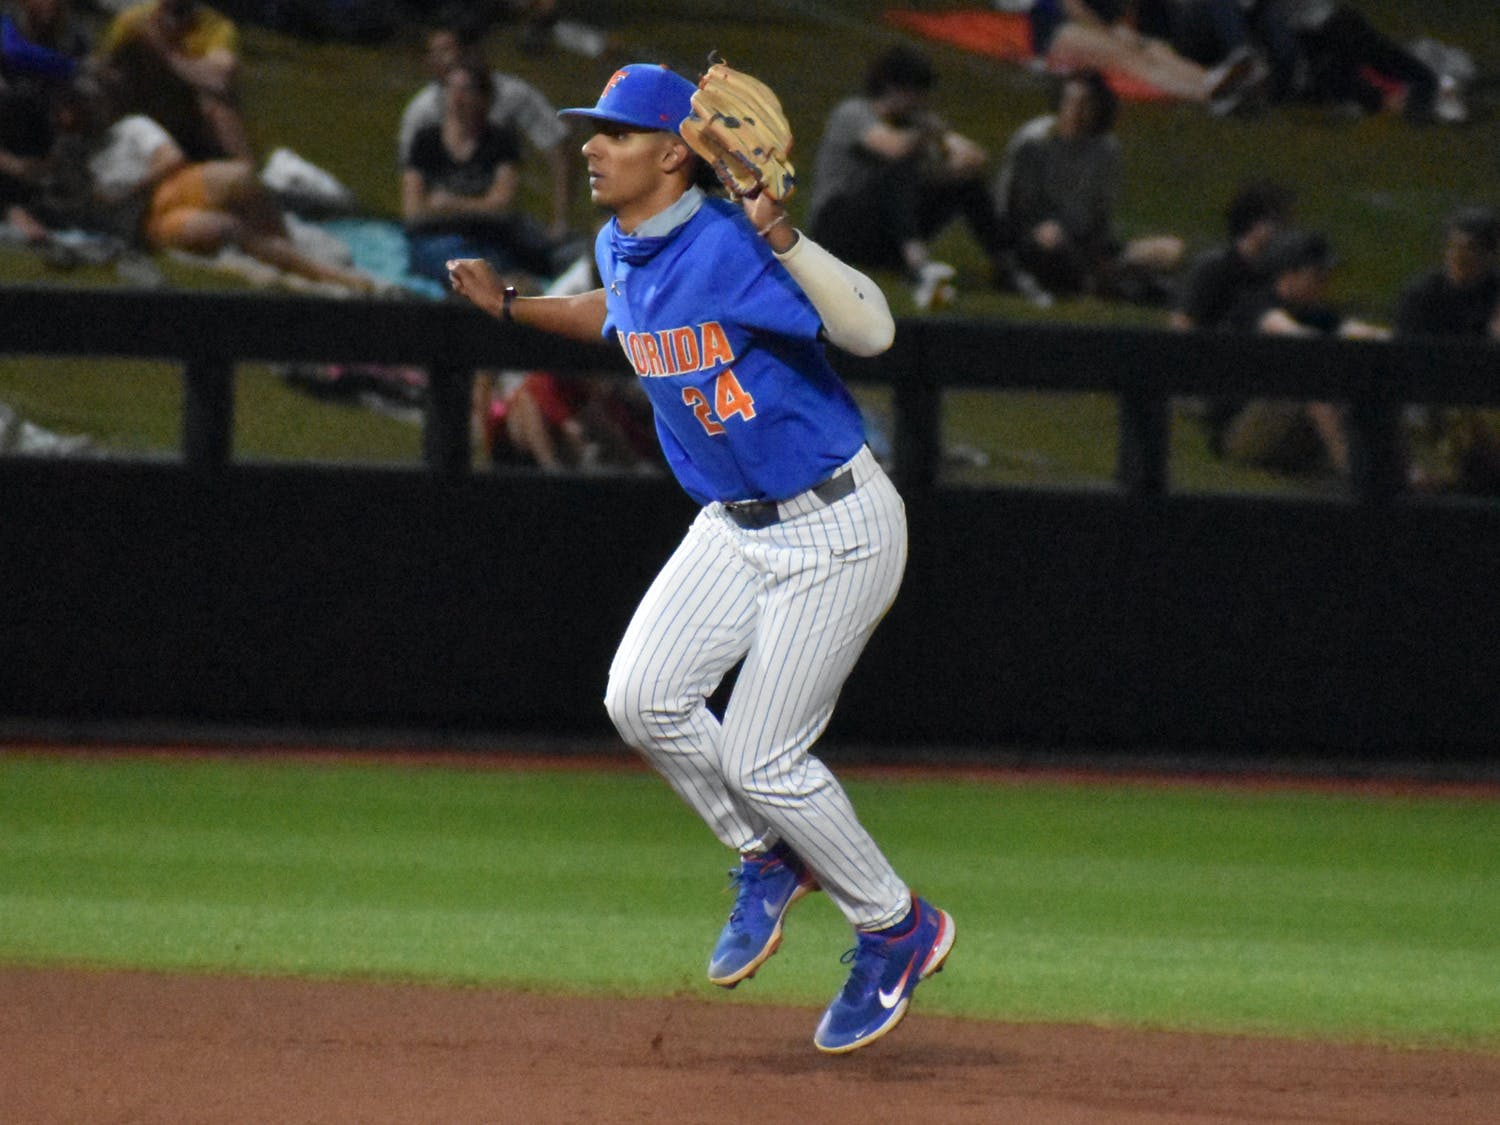 Rivera's three-RBI game marked a career-high for the second-year freshman. Photo from UF-Jacksonville game March 13.